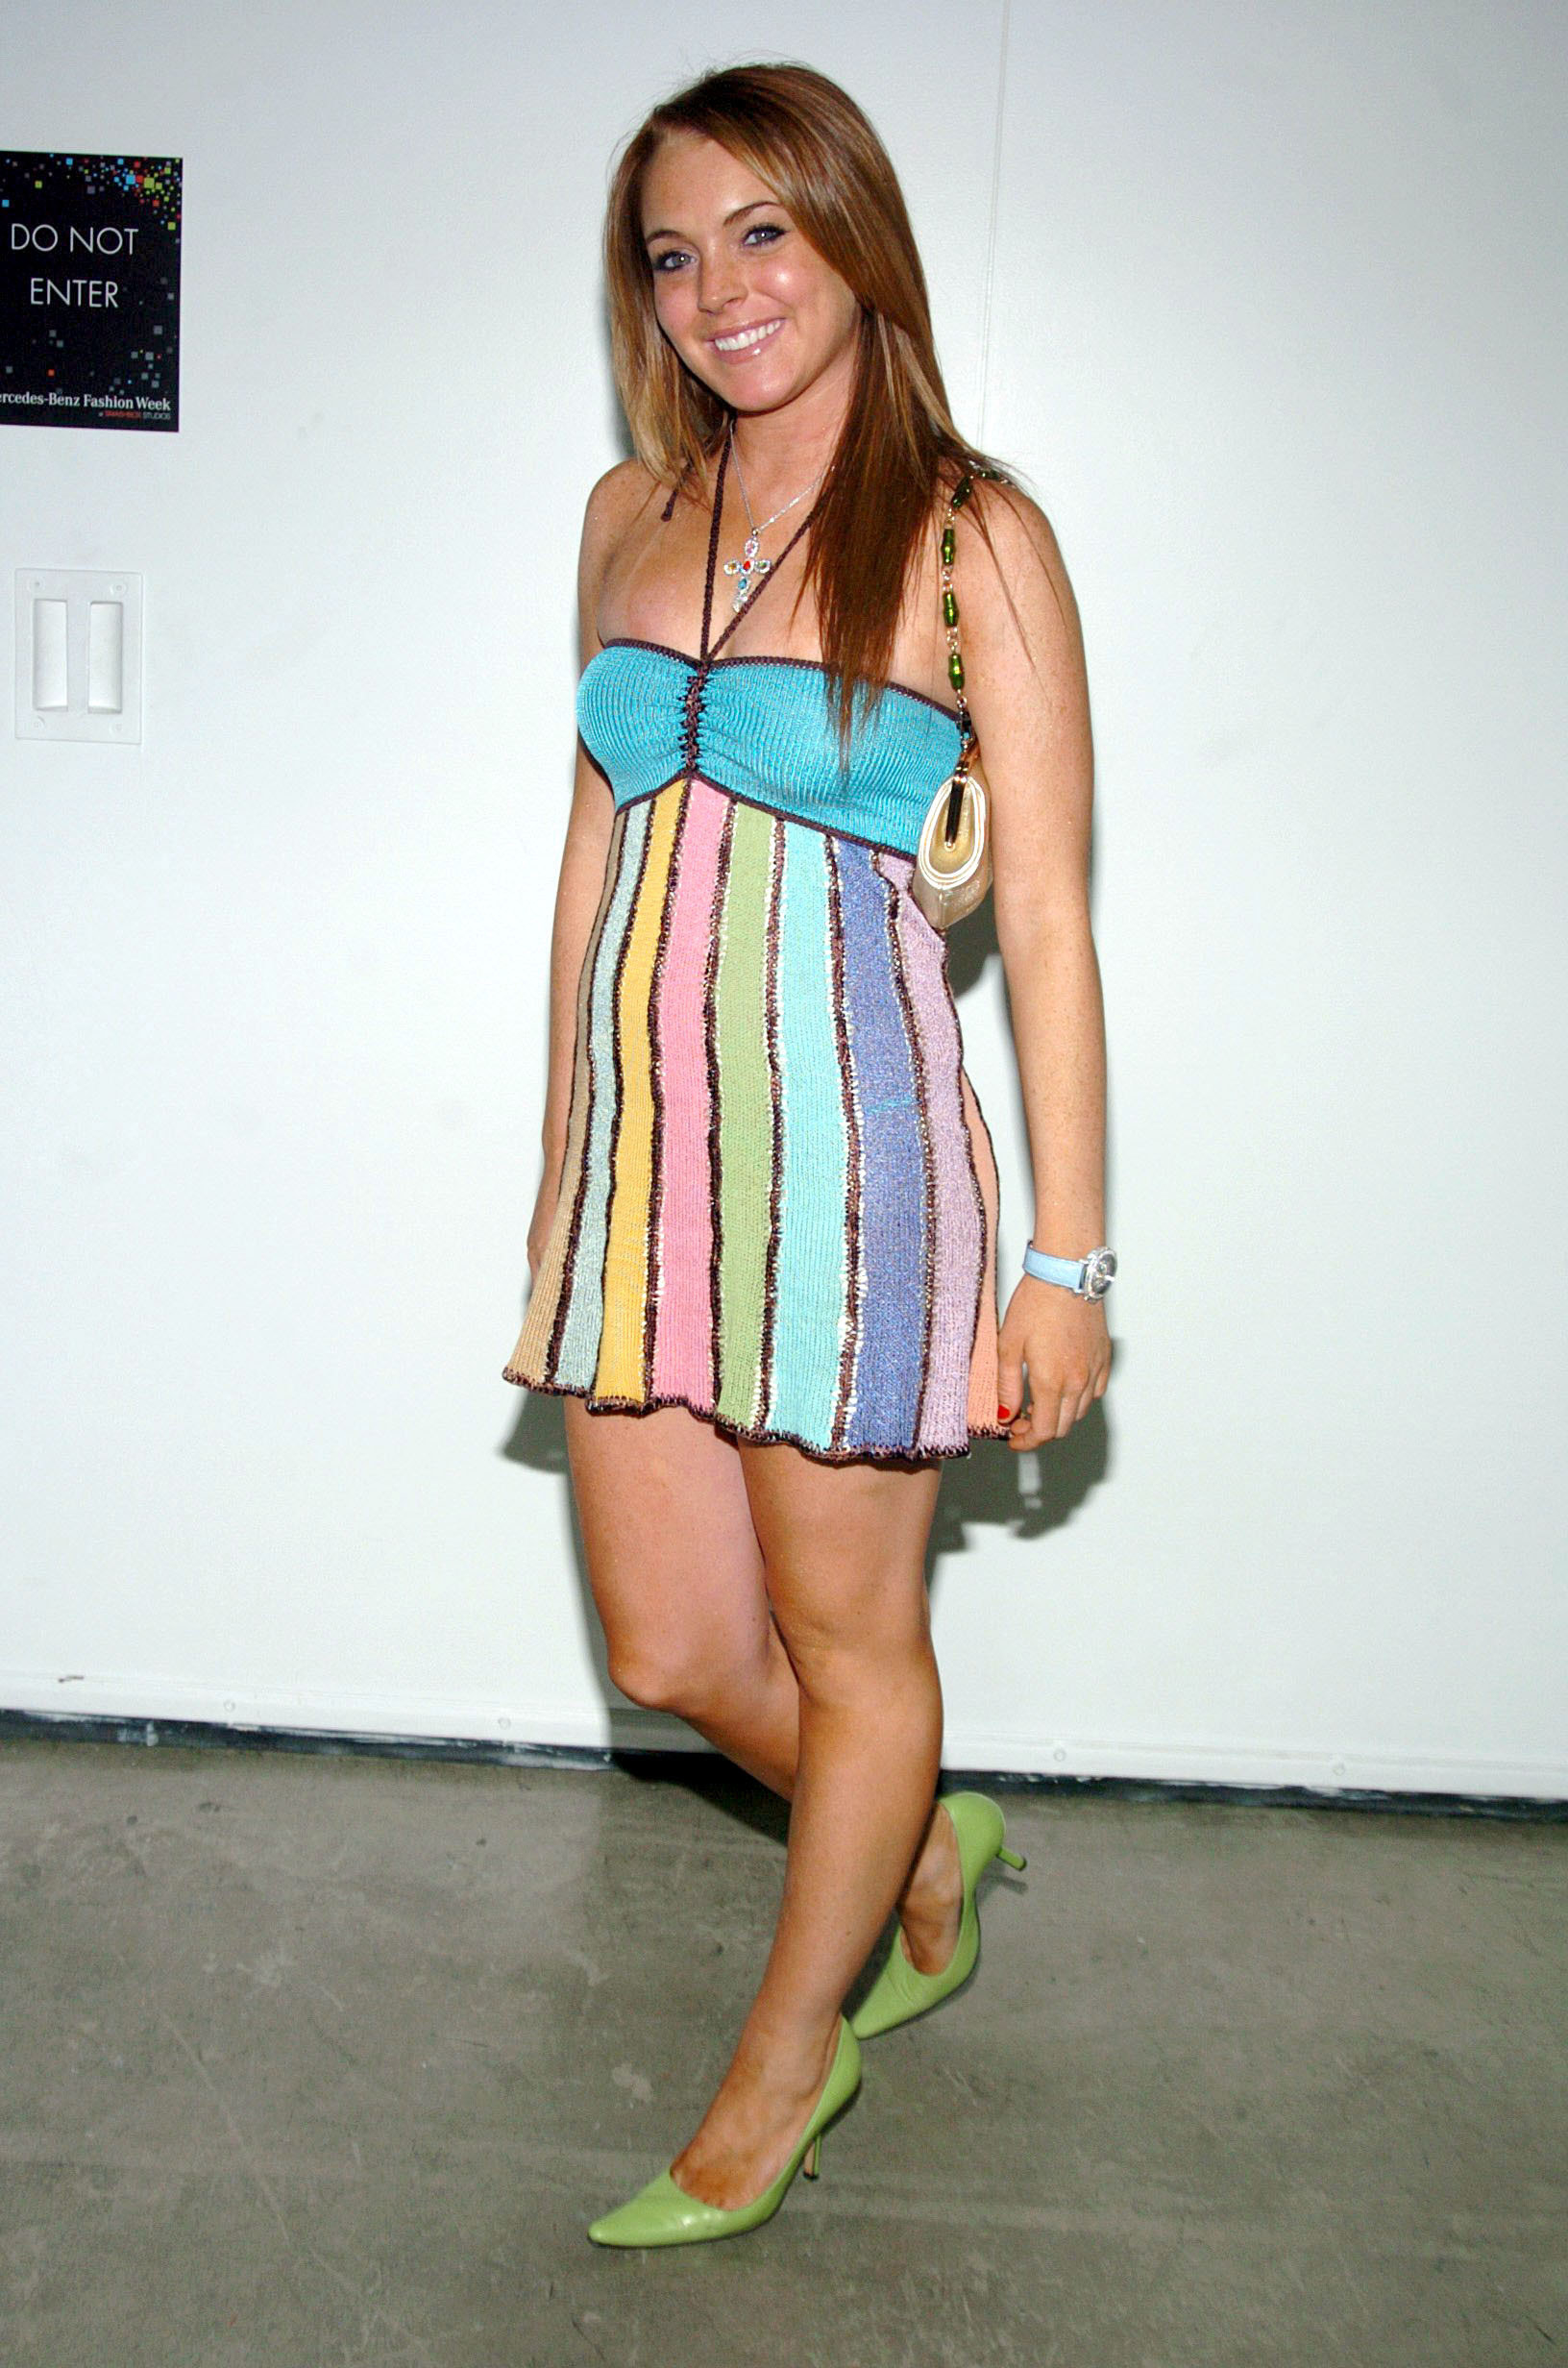 Lindsay in a stripped crotchet dress that resembles candy